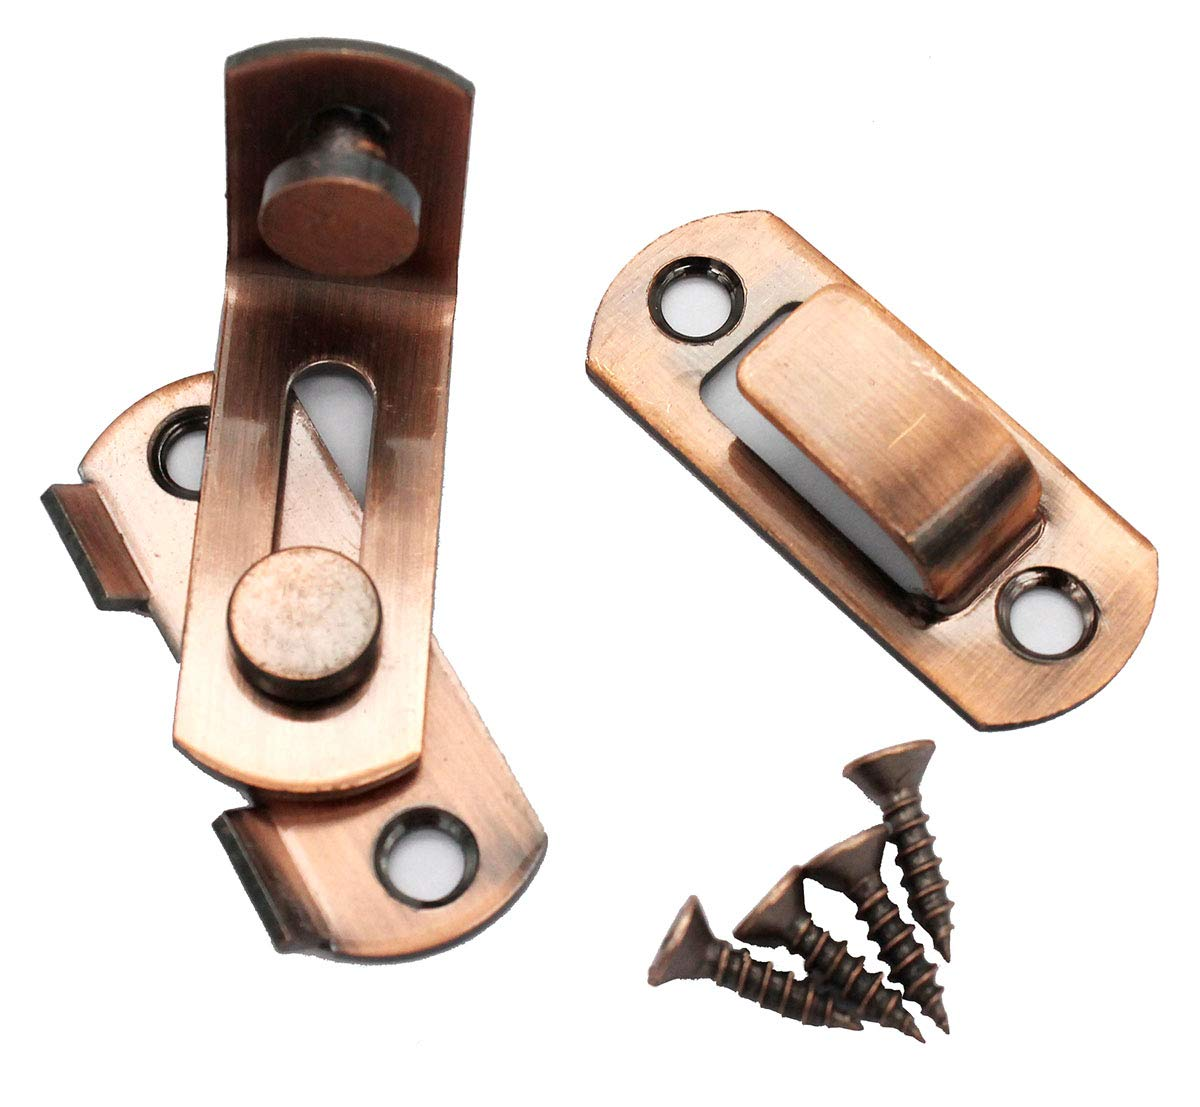 90 Degree Right Angle Door Latch Hasp Bending Latch Buckle Bolt Sliding Lock Barrel Bolt with Screws for Doors and Windows dingchimo